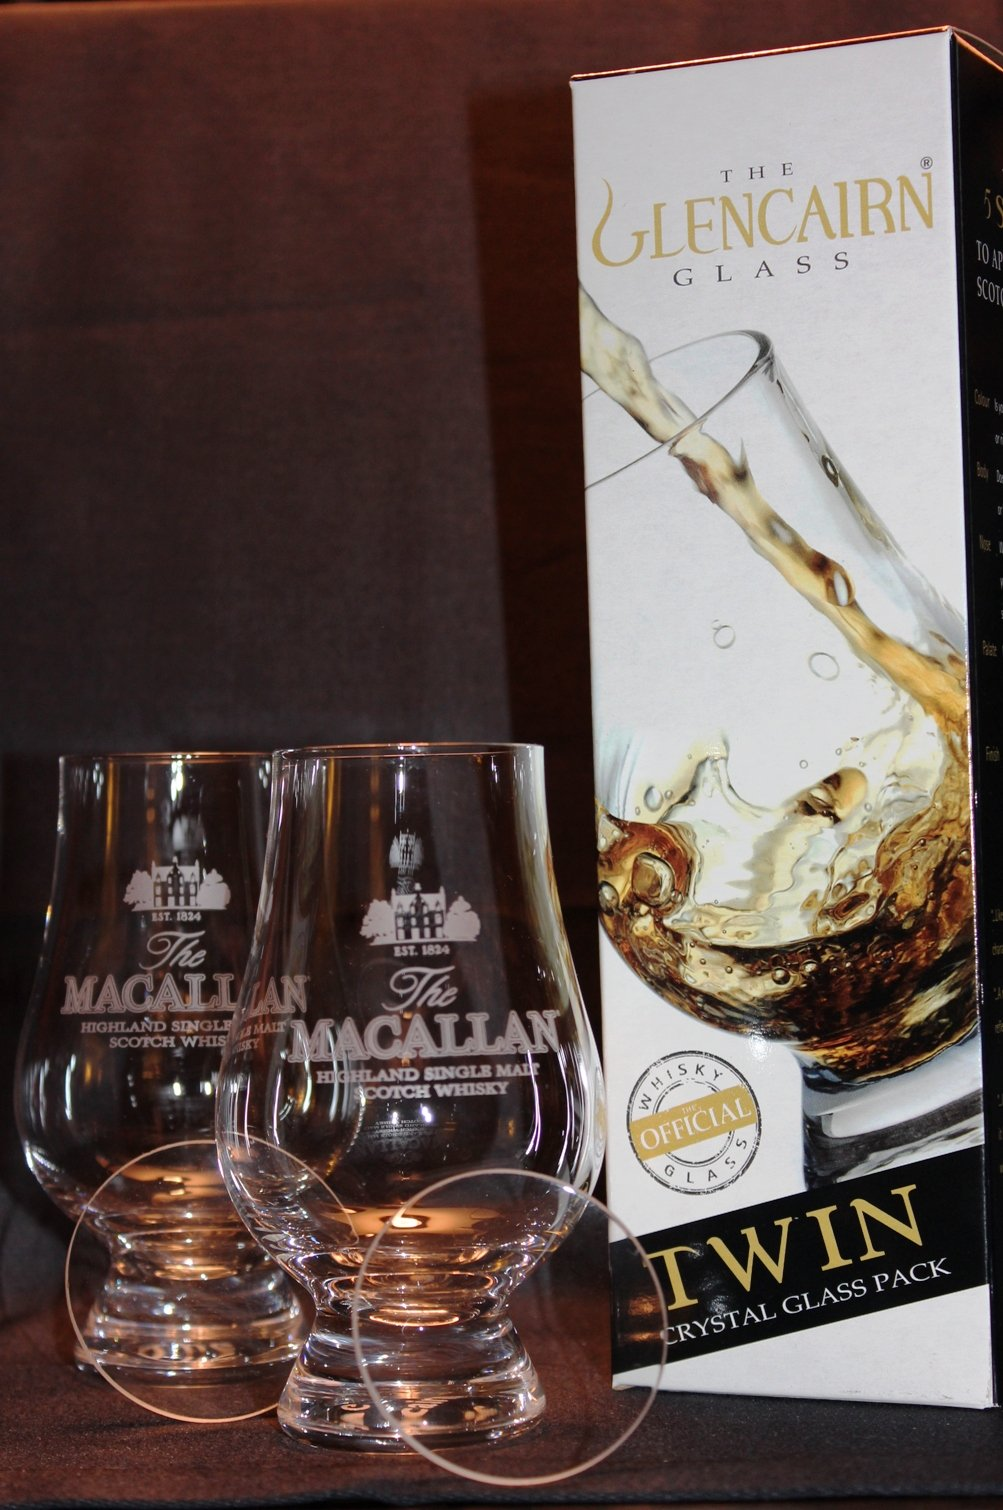 MACALLAN TWIN PACK GLENCAIRN SCOTCH MALT WHISKY TASTING GLASSES WITH TWO WATCH GLASS COVERS